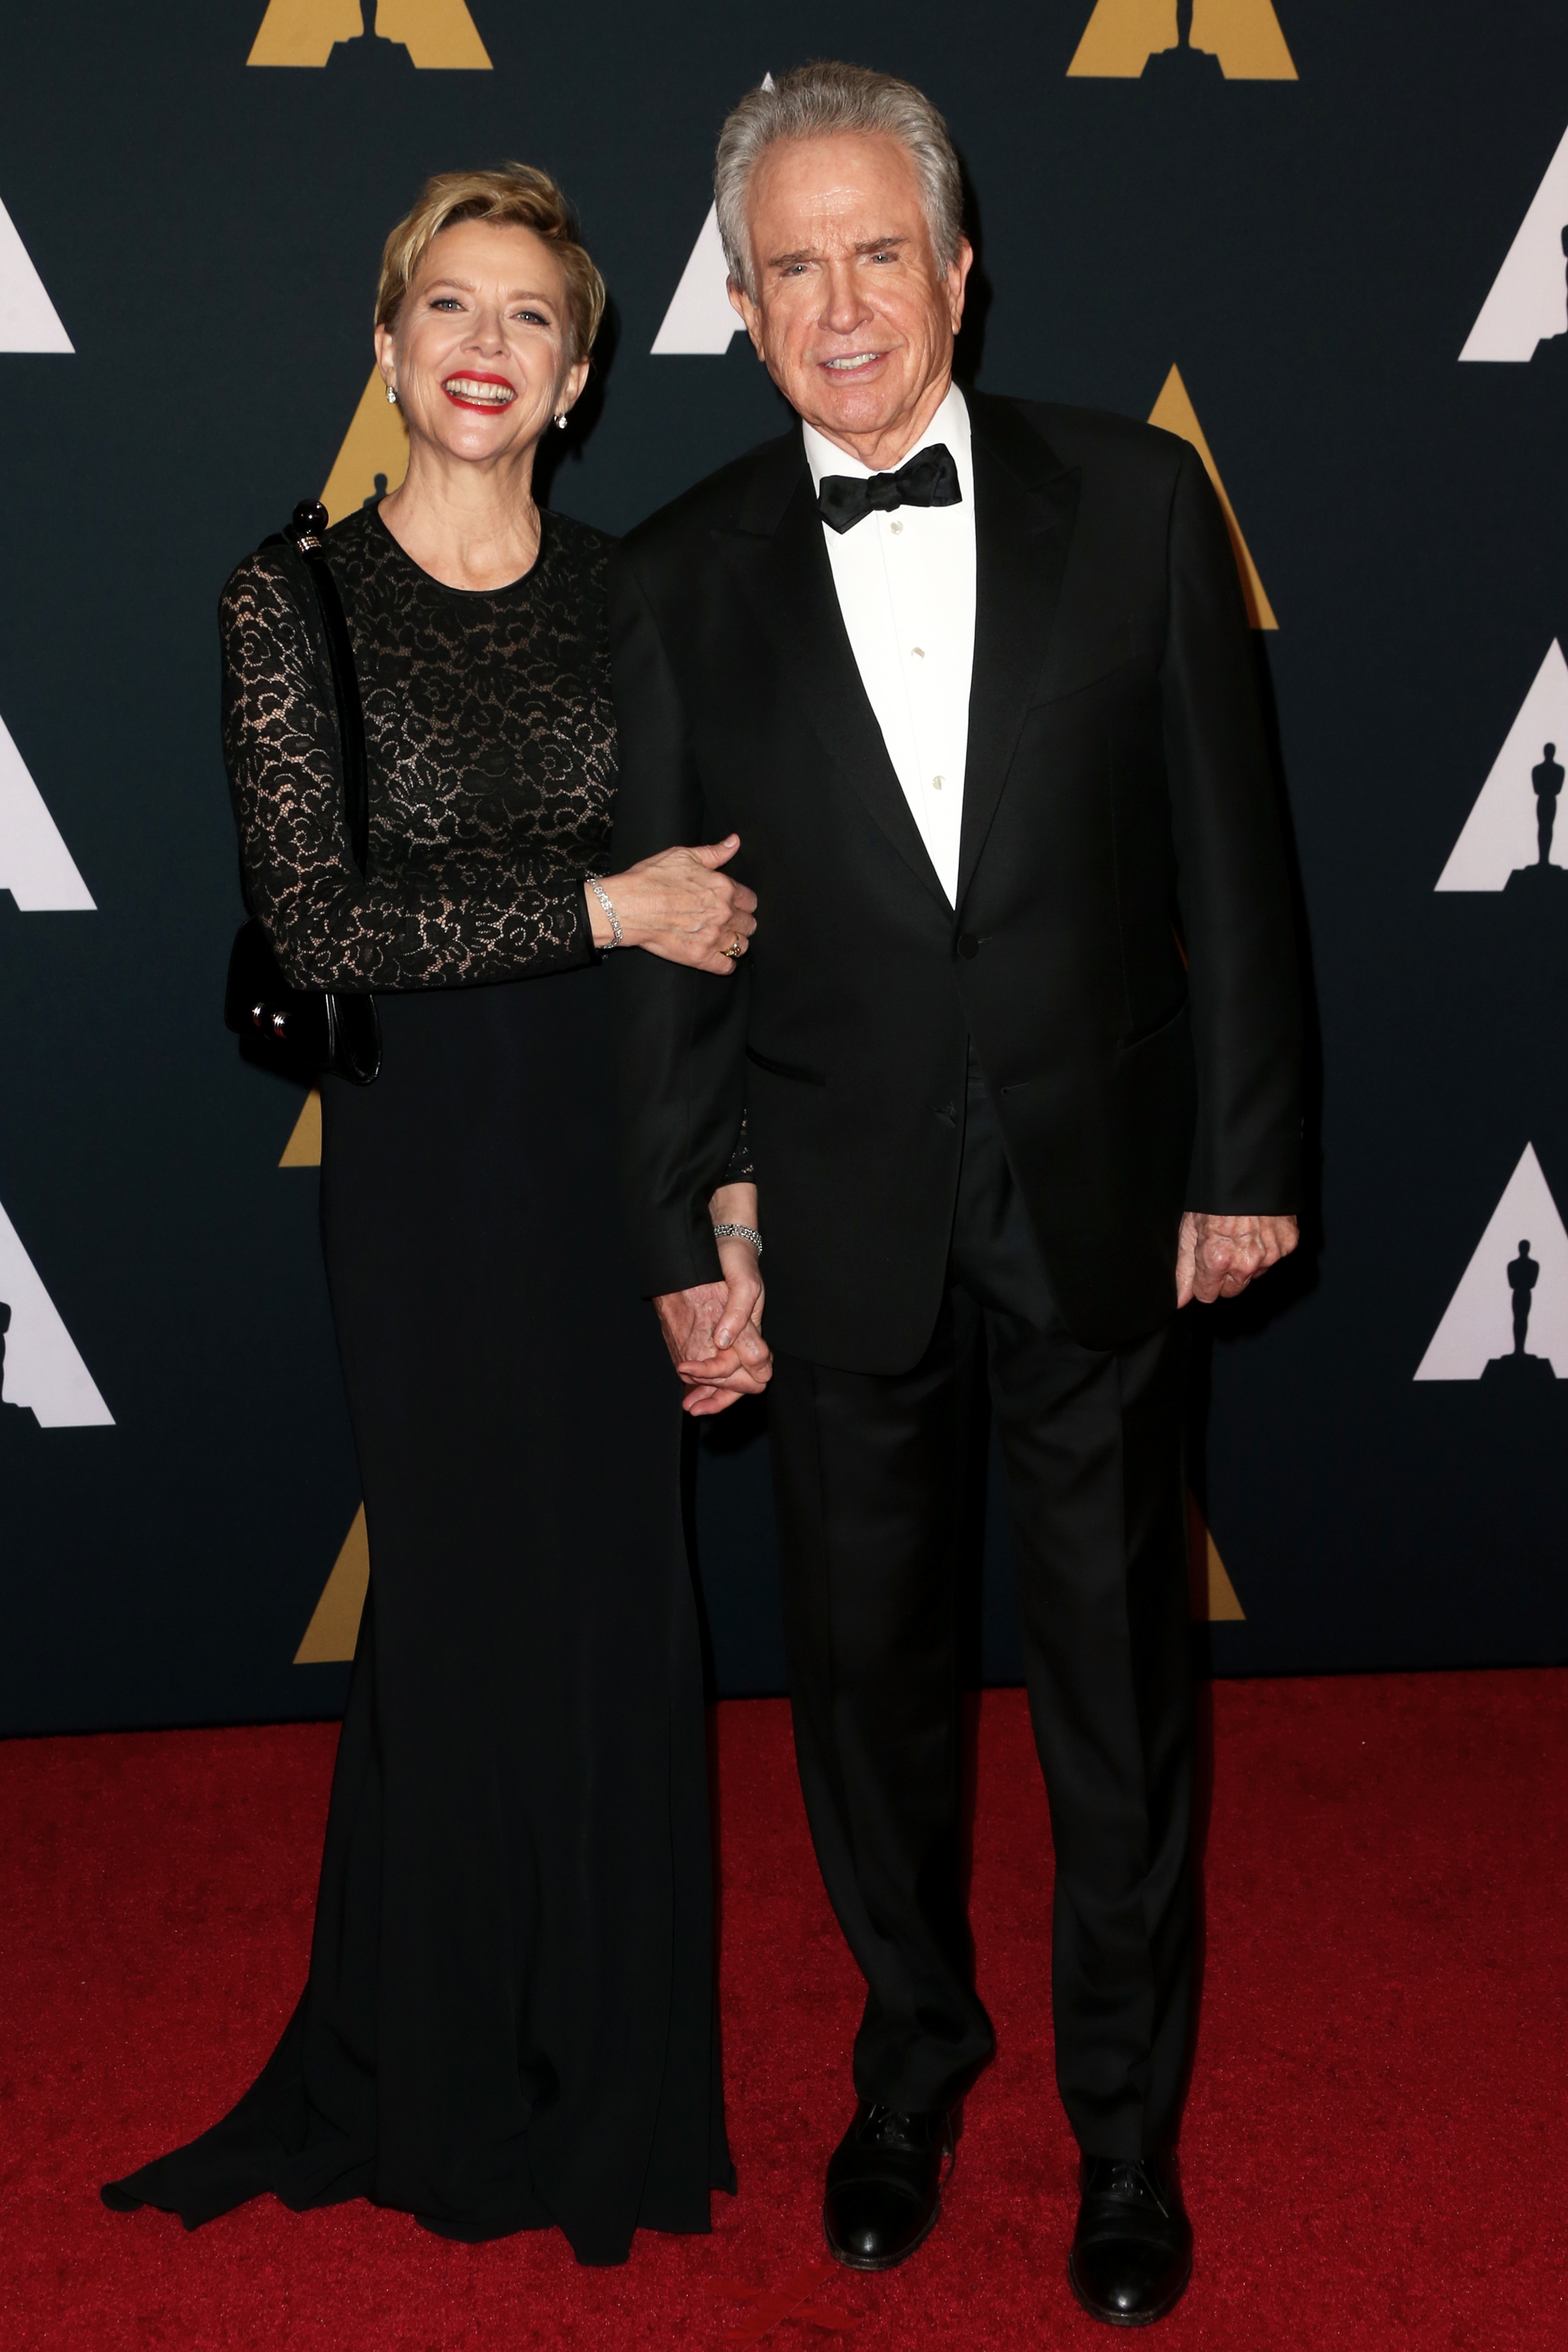 Annette Bening and husband Warren Beatty